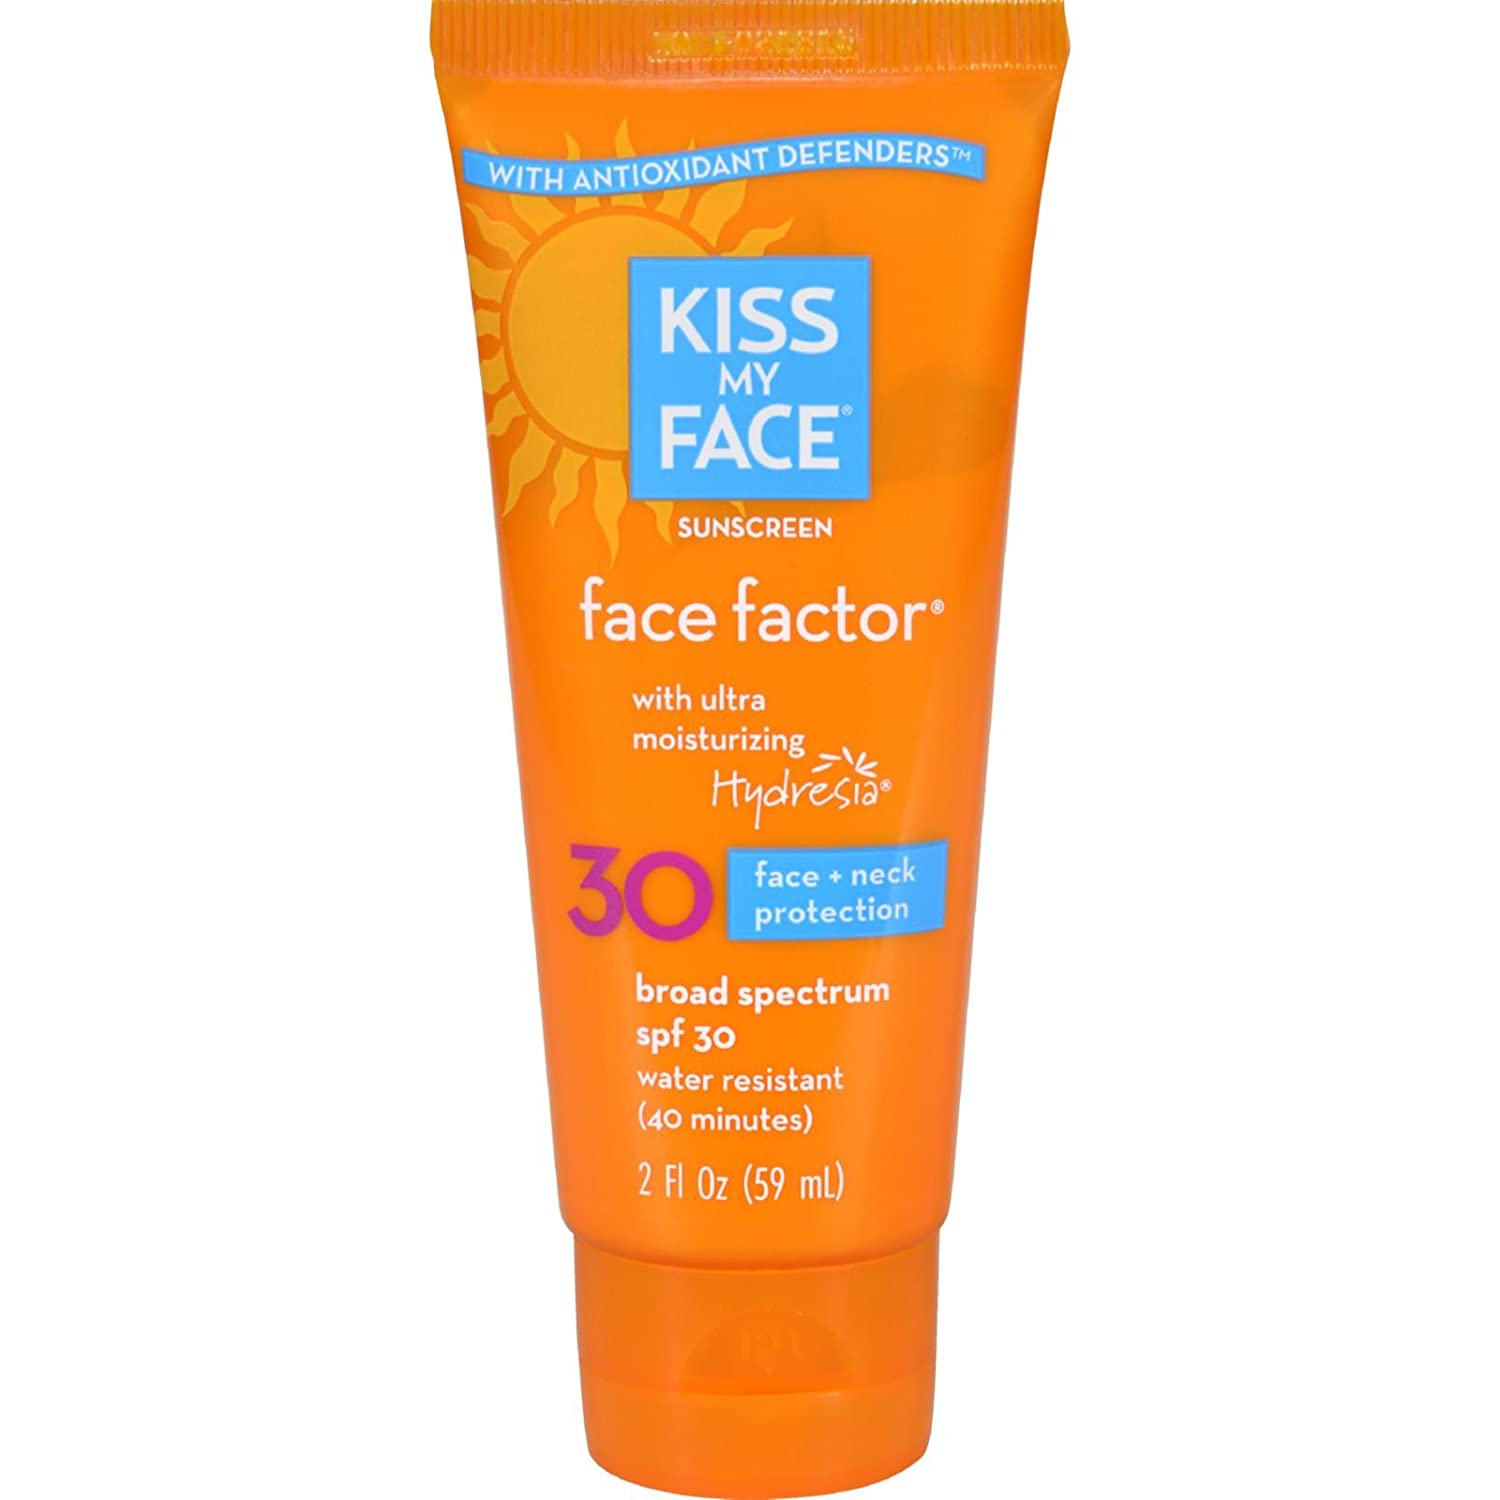 2 Pack of Kiss My Face Face Factor - SPF 30 - 2 fl oz